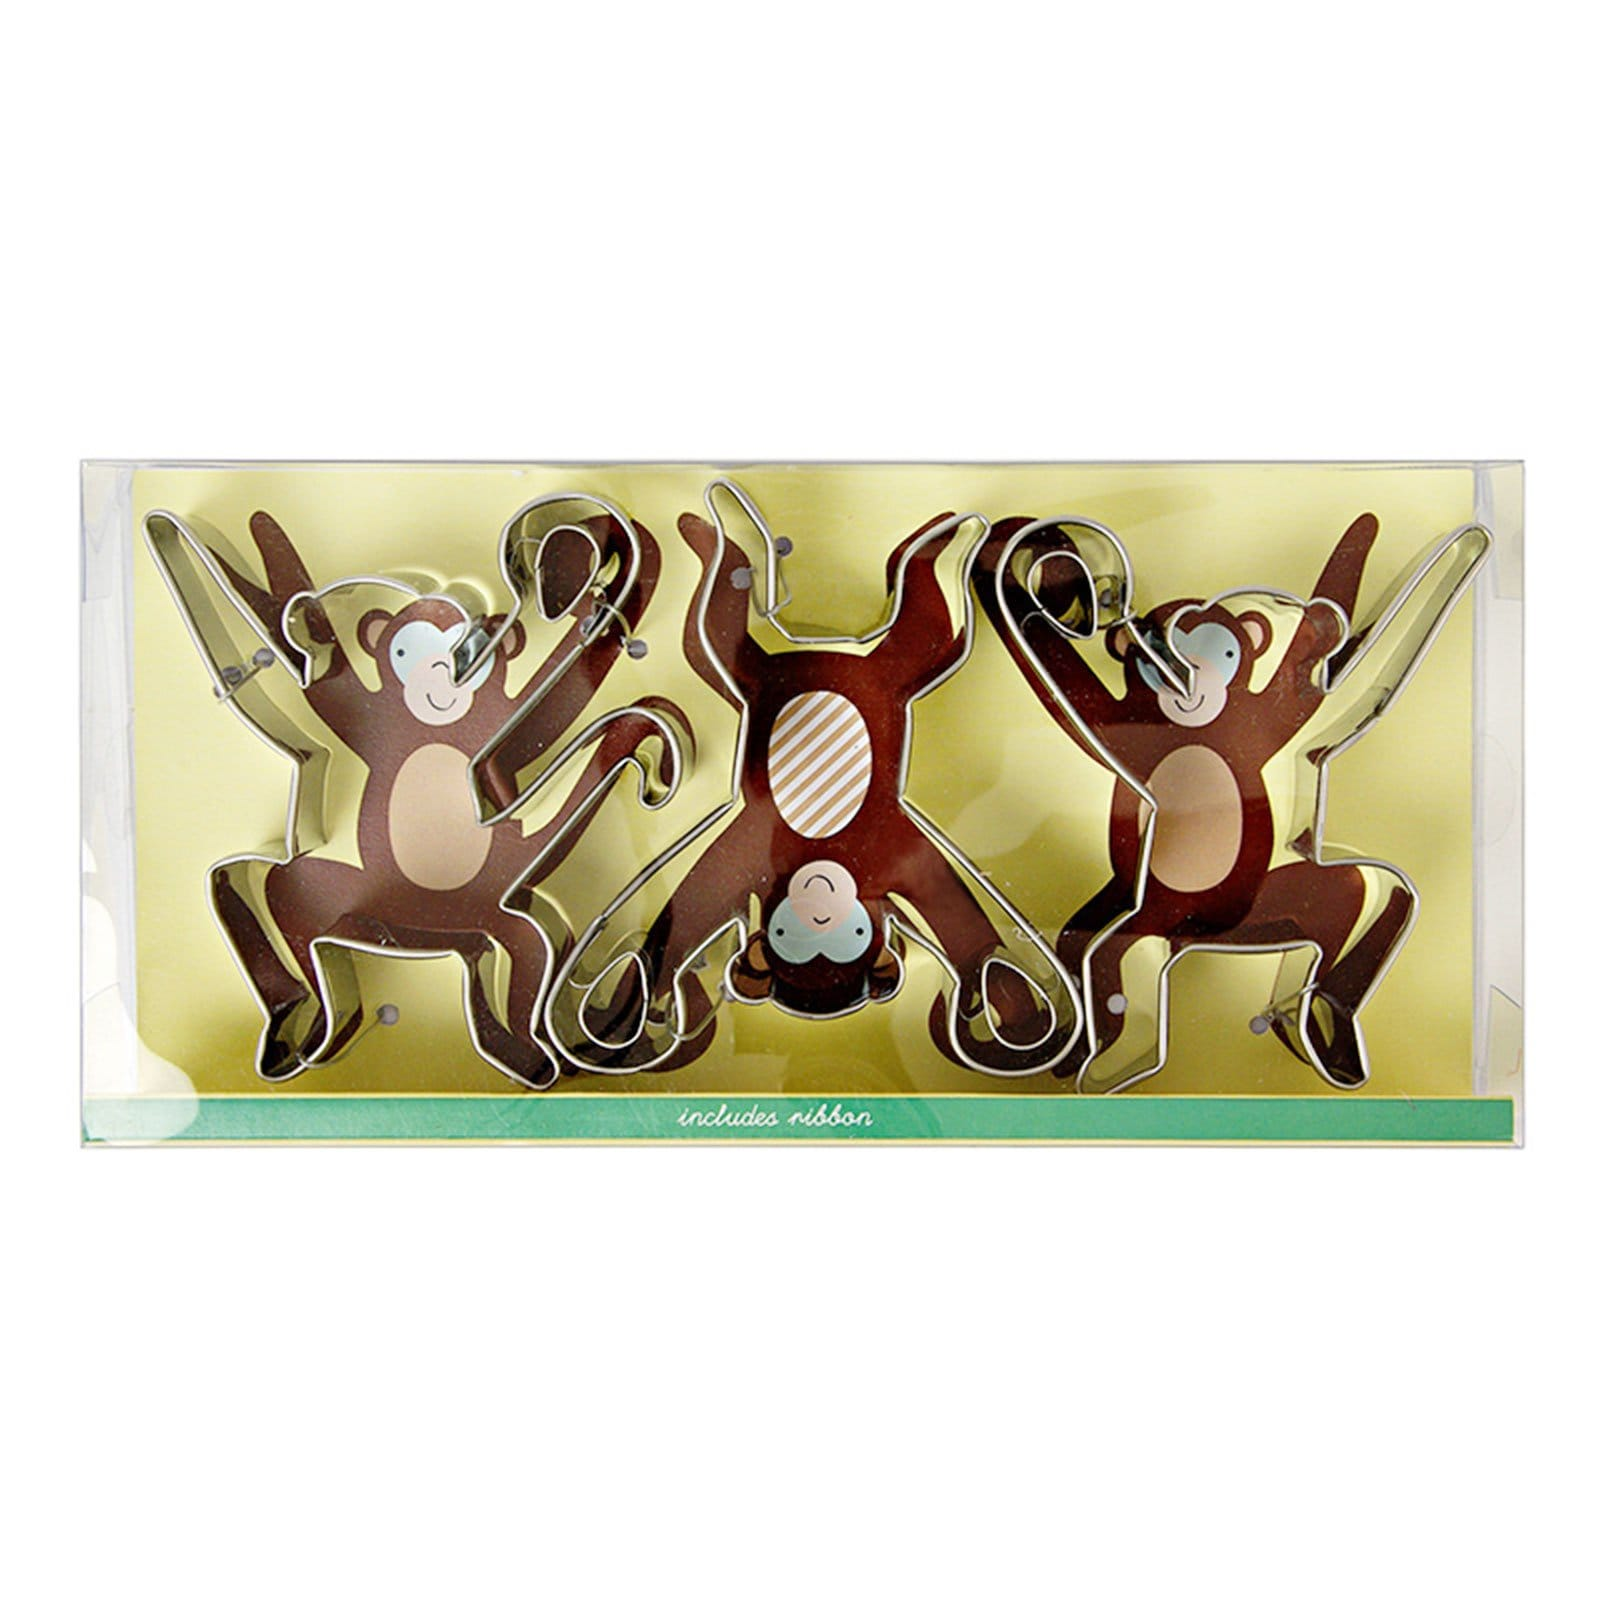 Cheeky Monkey Cookie Cutters